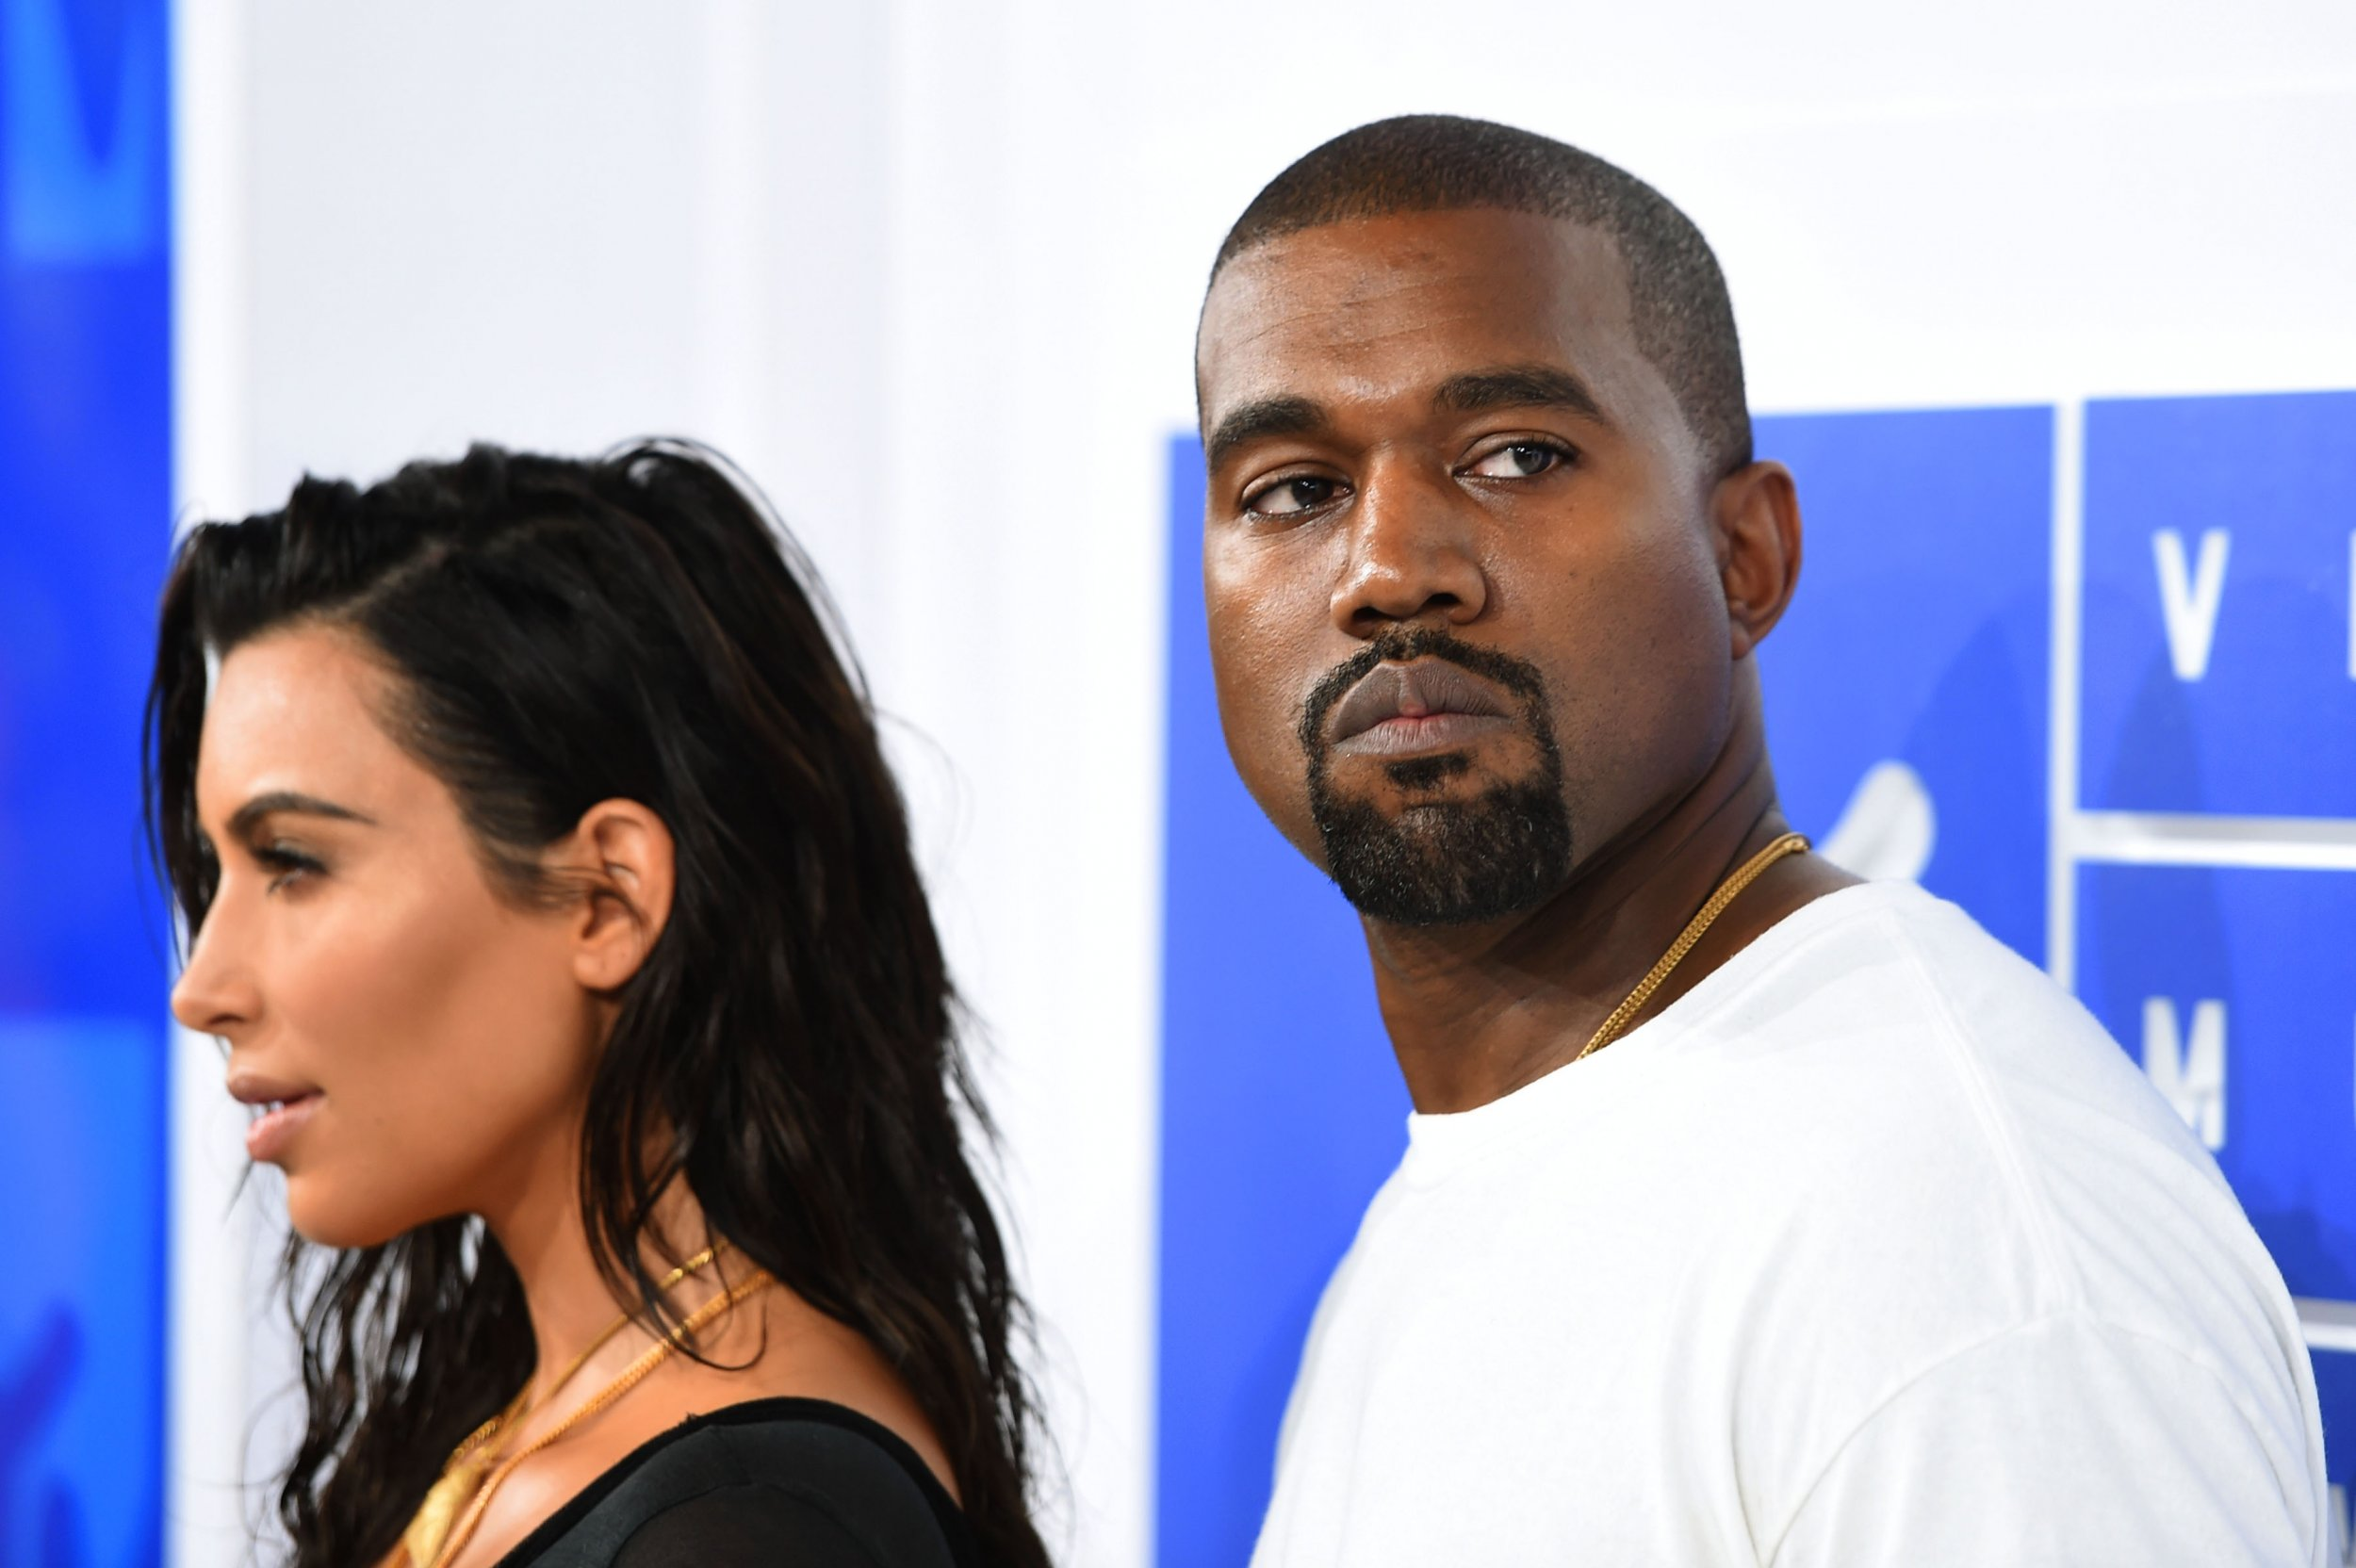 Kim Kardashian says Kanye West supports Trump because he doesn't understand his policies